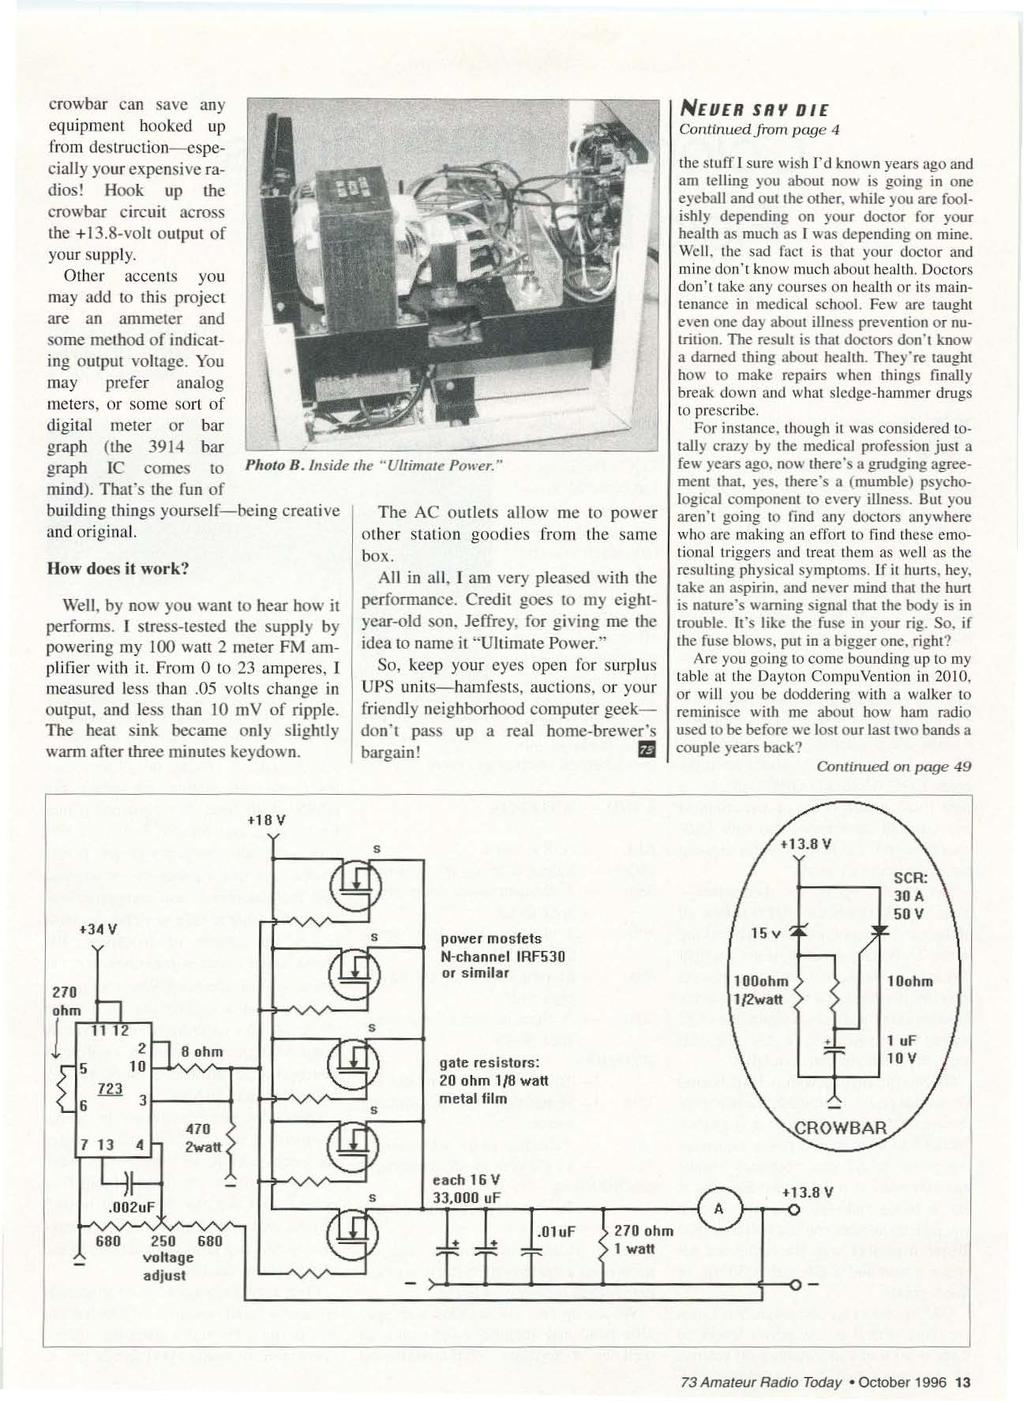 Qrp Low Power Fun Including Ham Radio October 1996 Issue 433 Circuit Trainer For Professionals Logic Gate Trainerii Crowbar Can Save An Y Equipment Hooked Up From Destruction Especially Your E Xpens Ive